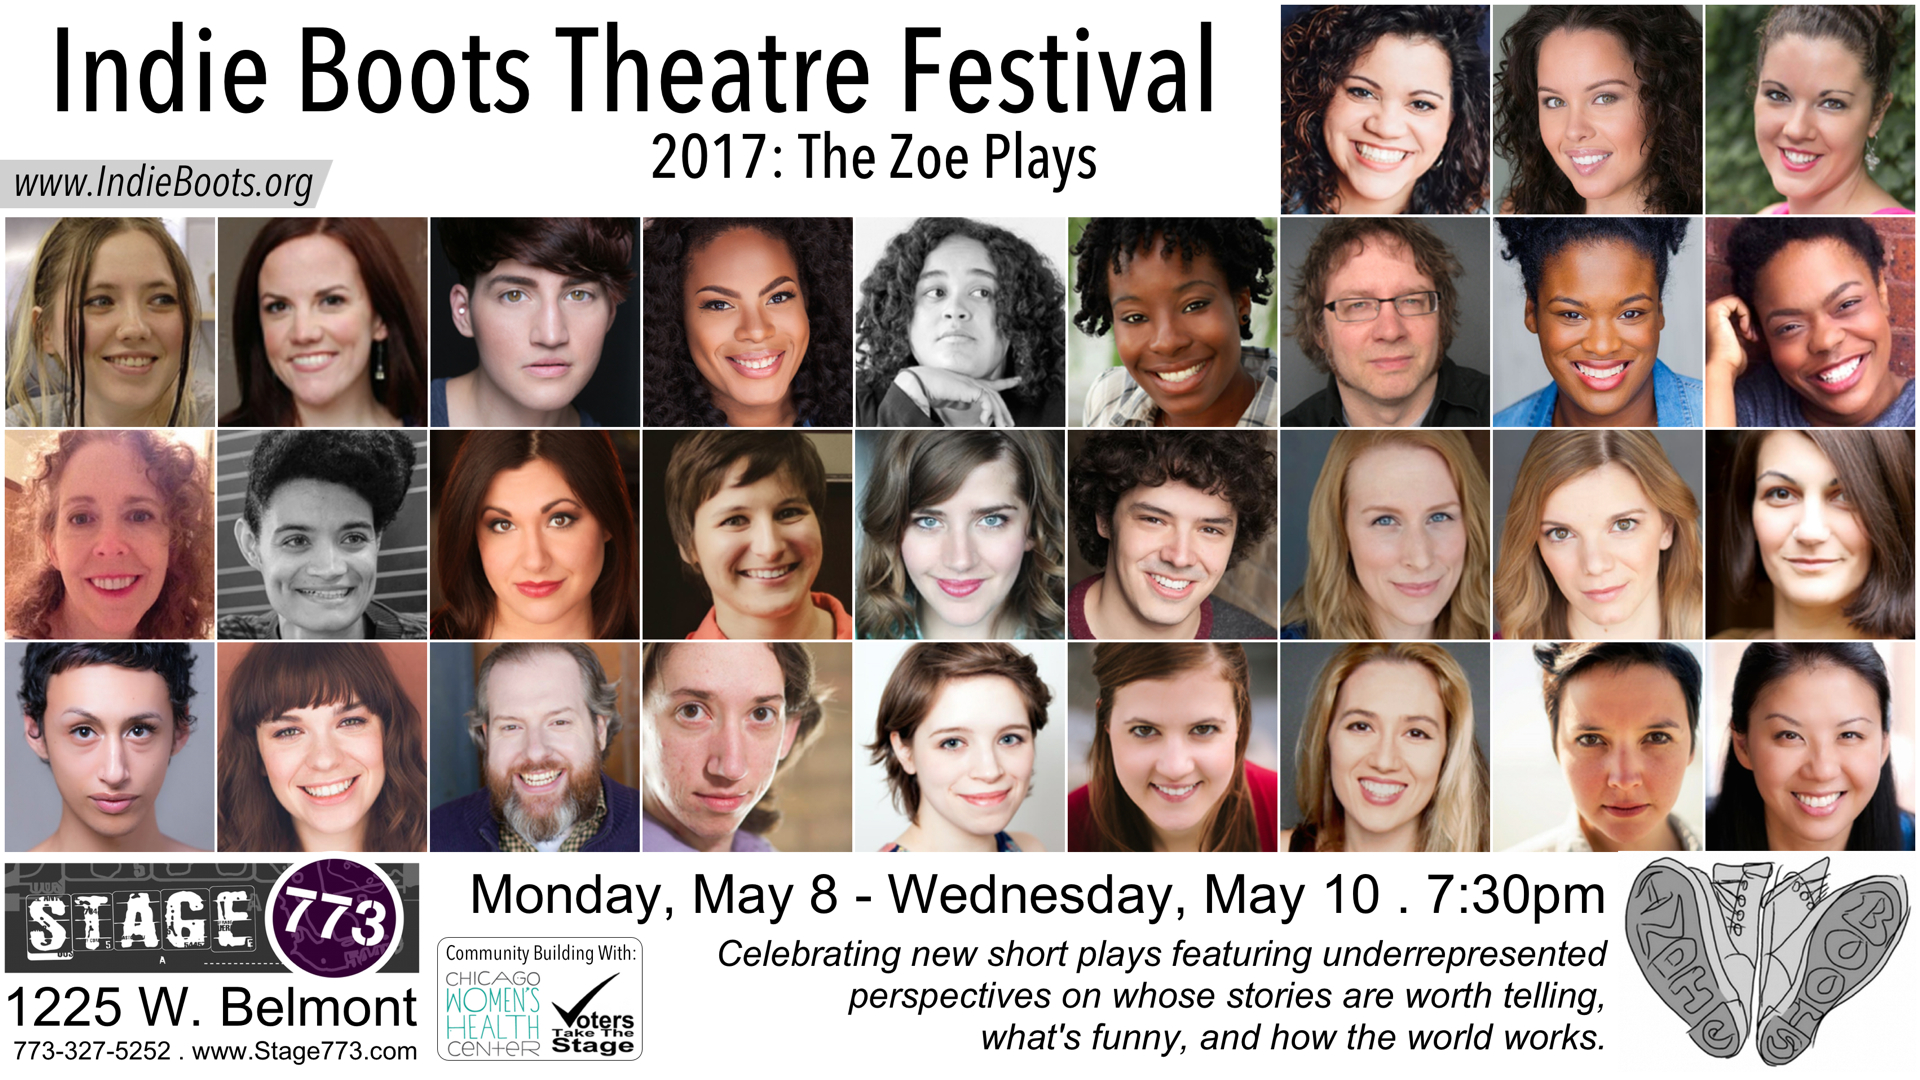 Indie Boots Theatre Festival 2017: The Zoe Plays postcard with actor headshots